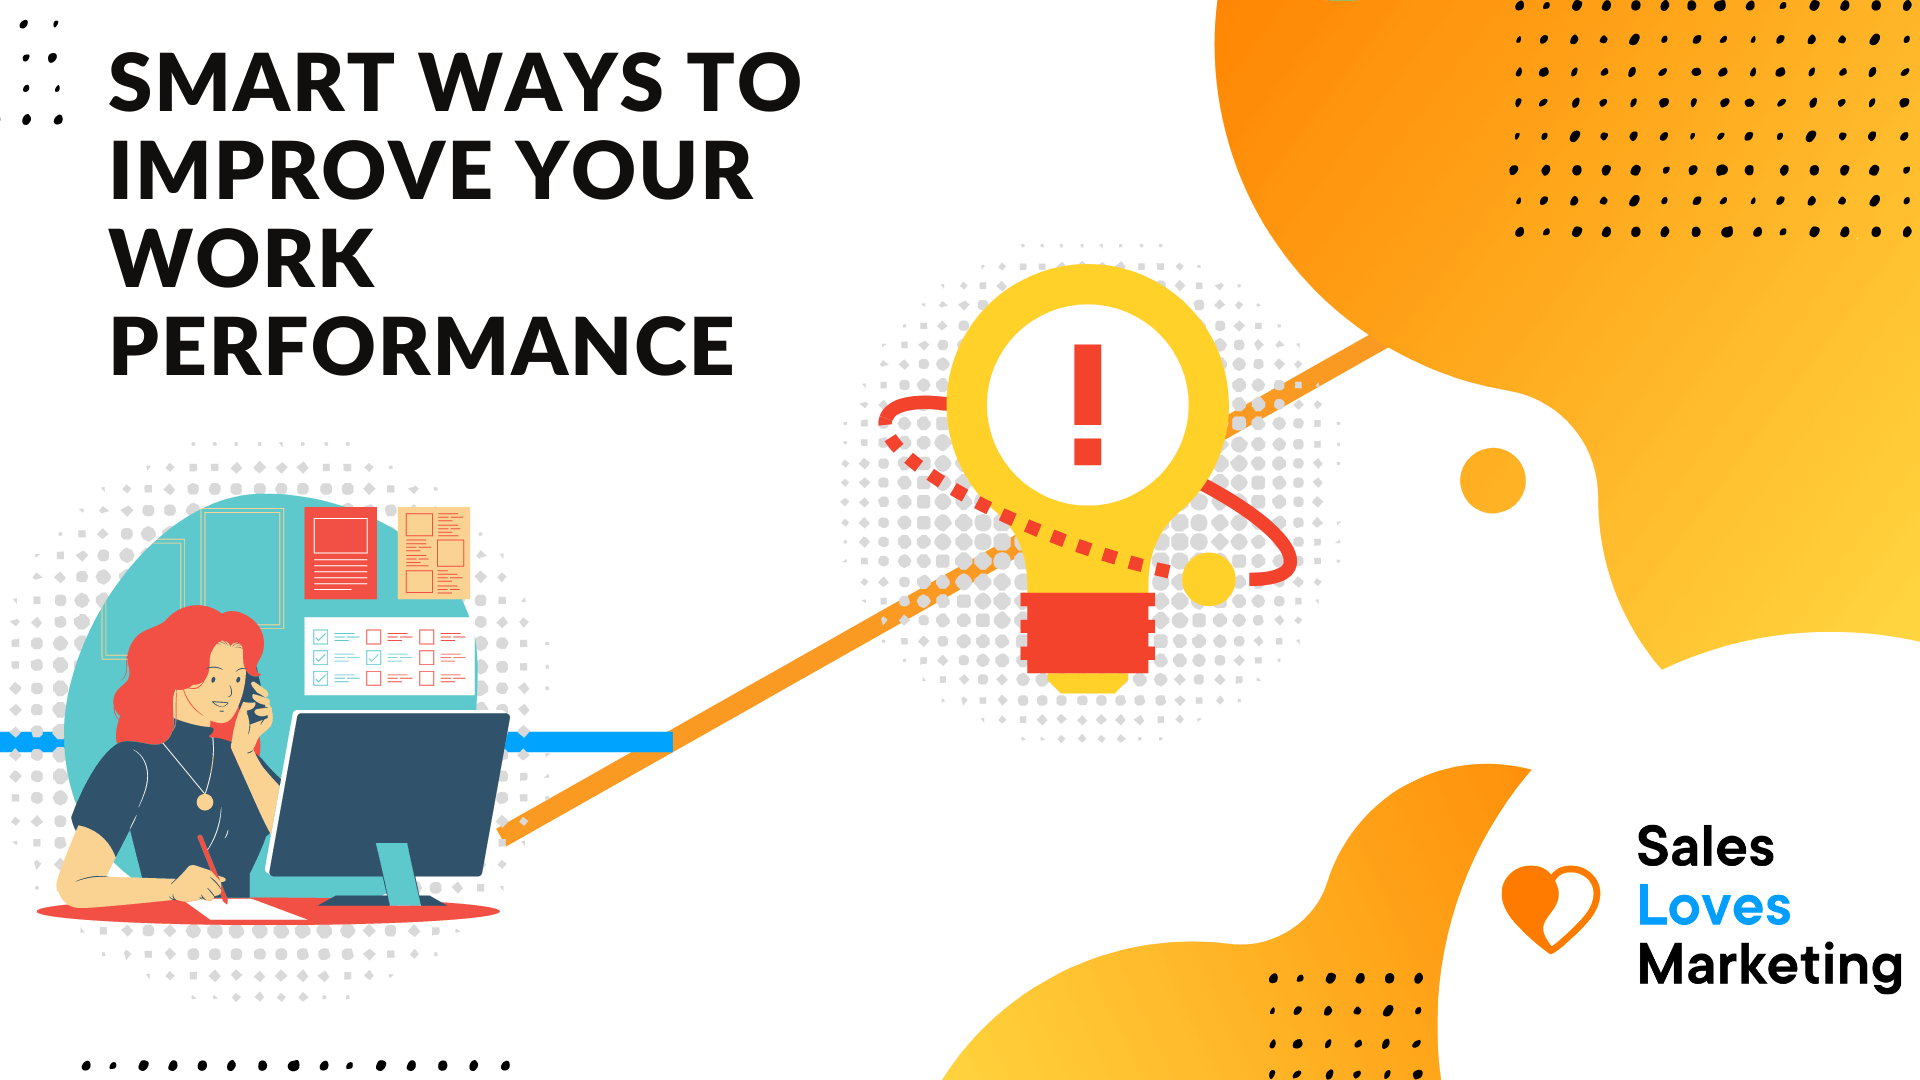 How to improve your work performance with these tips